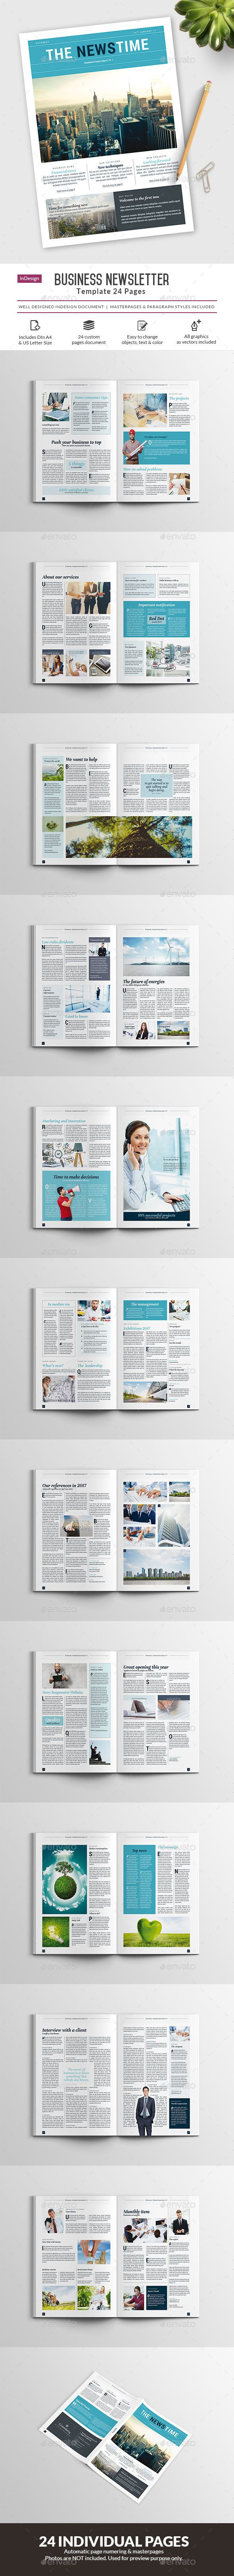 clean business newsletter 24 pages pinterest